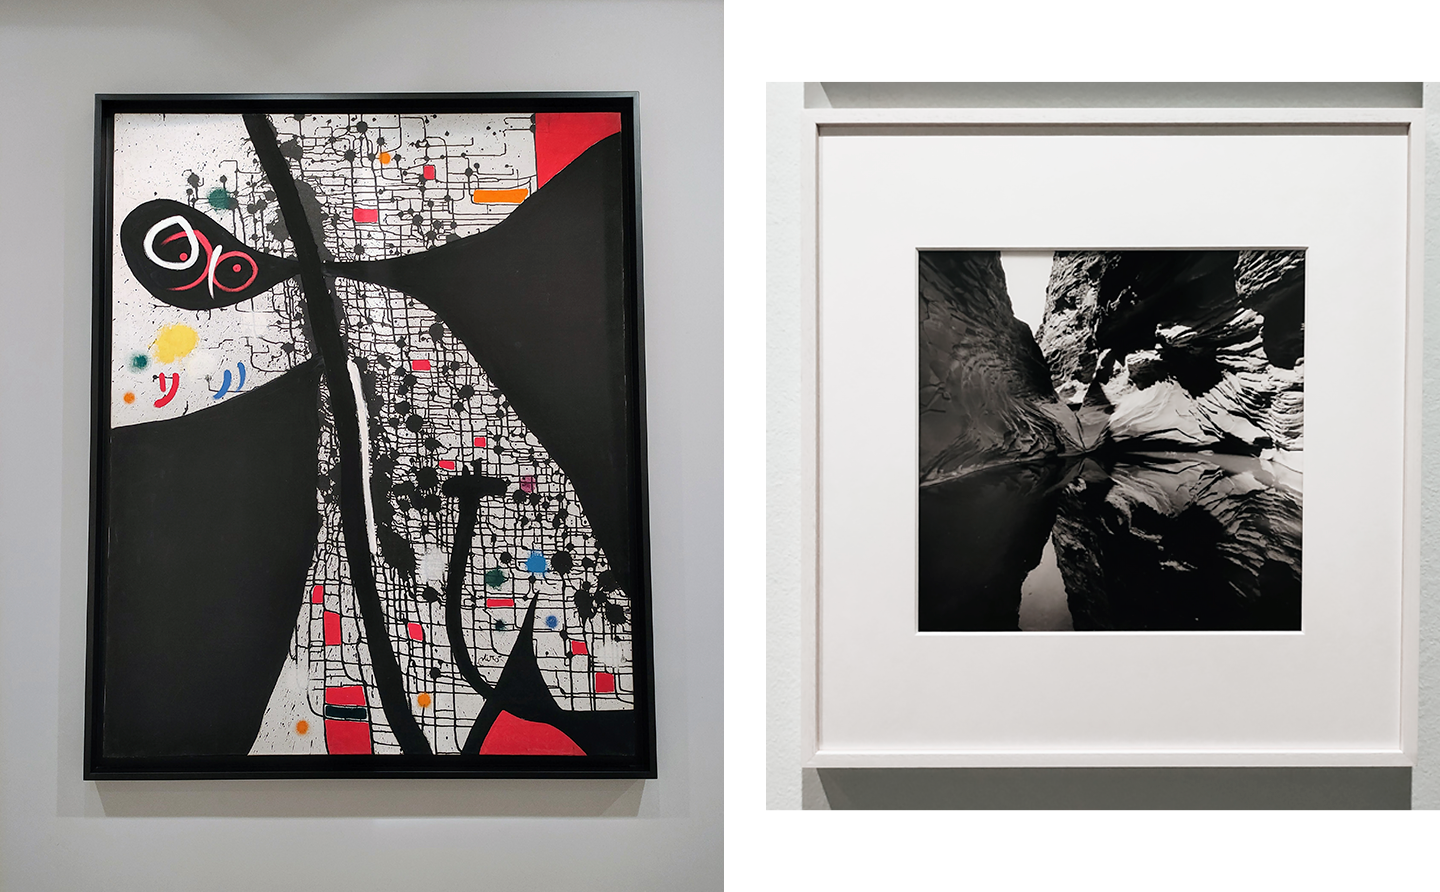 an abstract painting and a black and white photograph